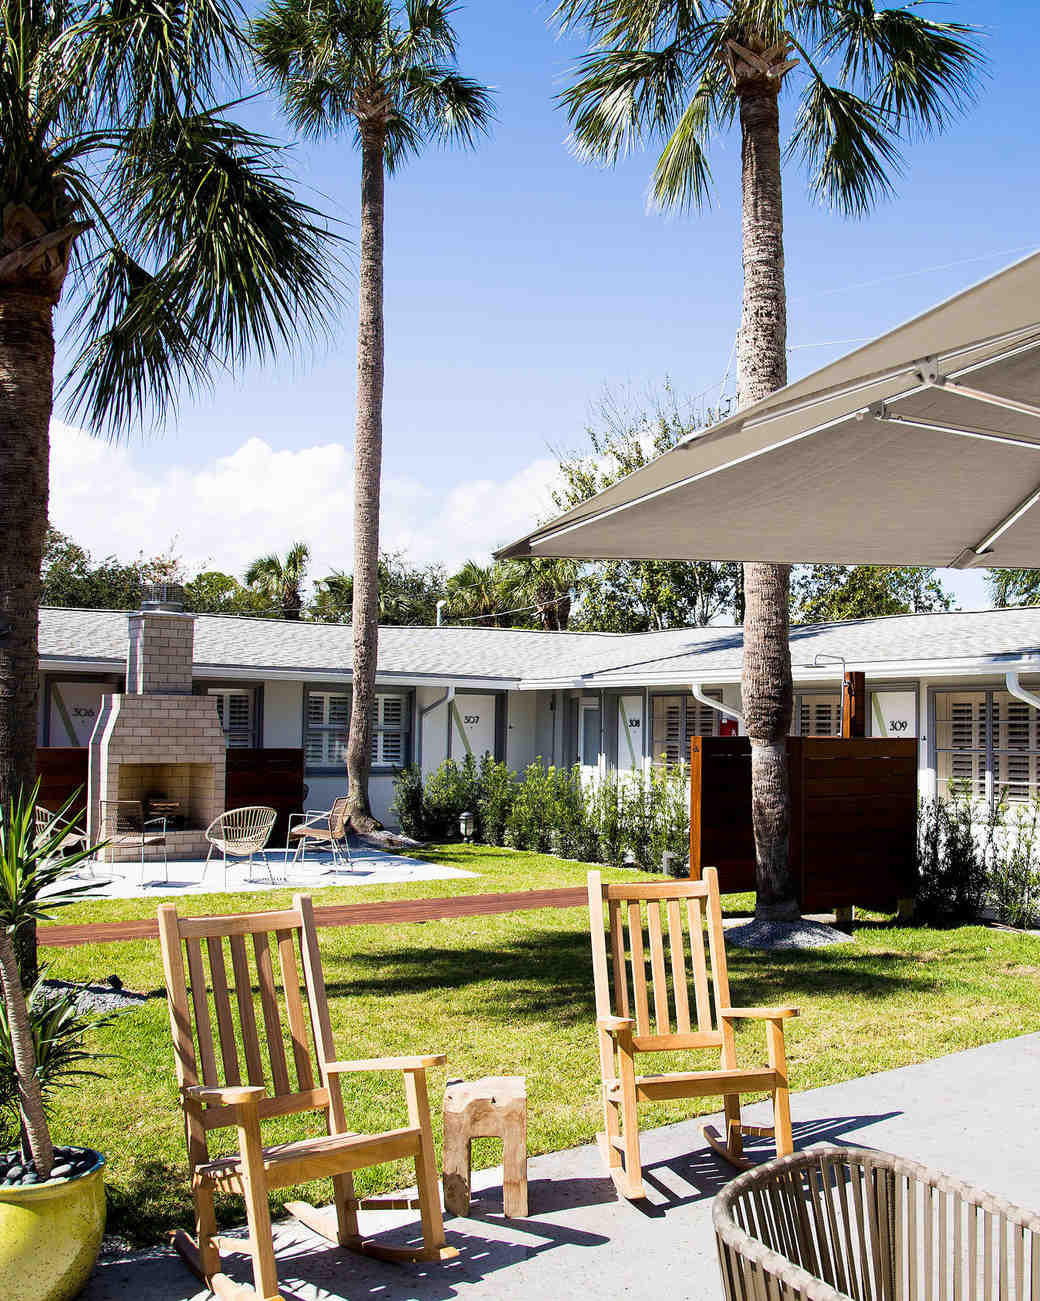 hotel palms courtyard chairs